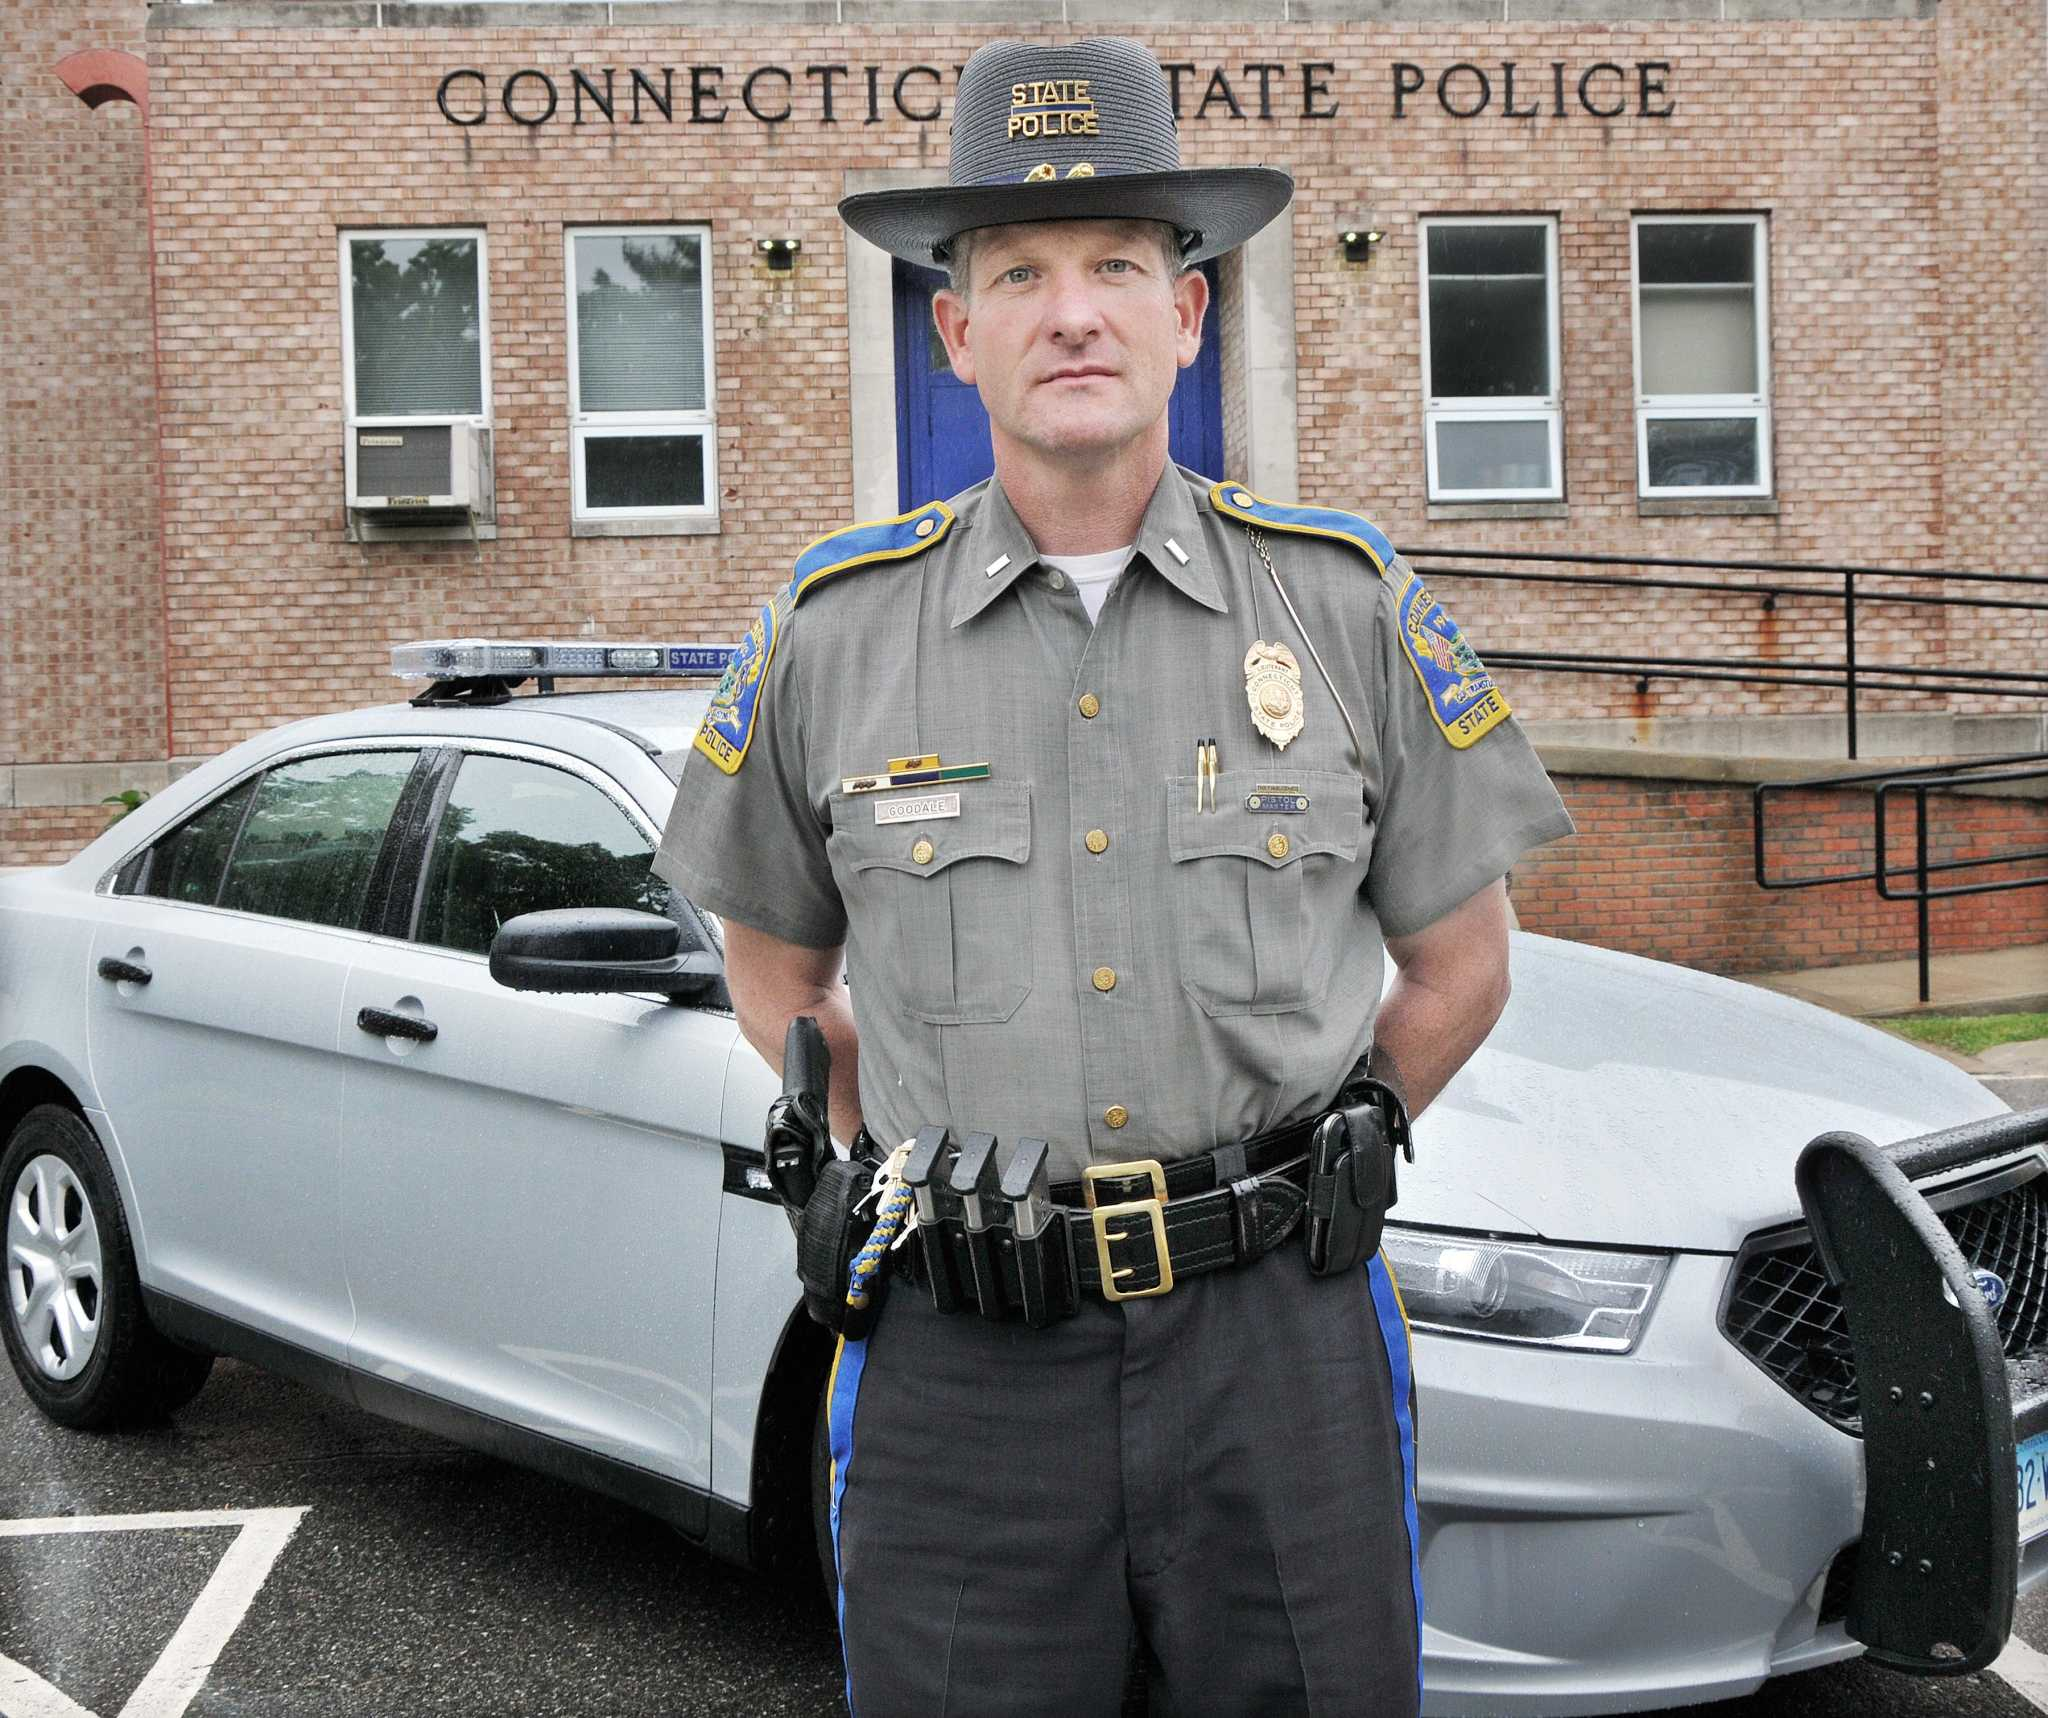 CT state police report: Trooper failed to 'display the